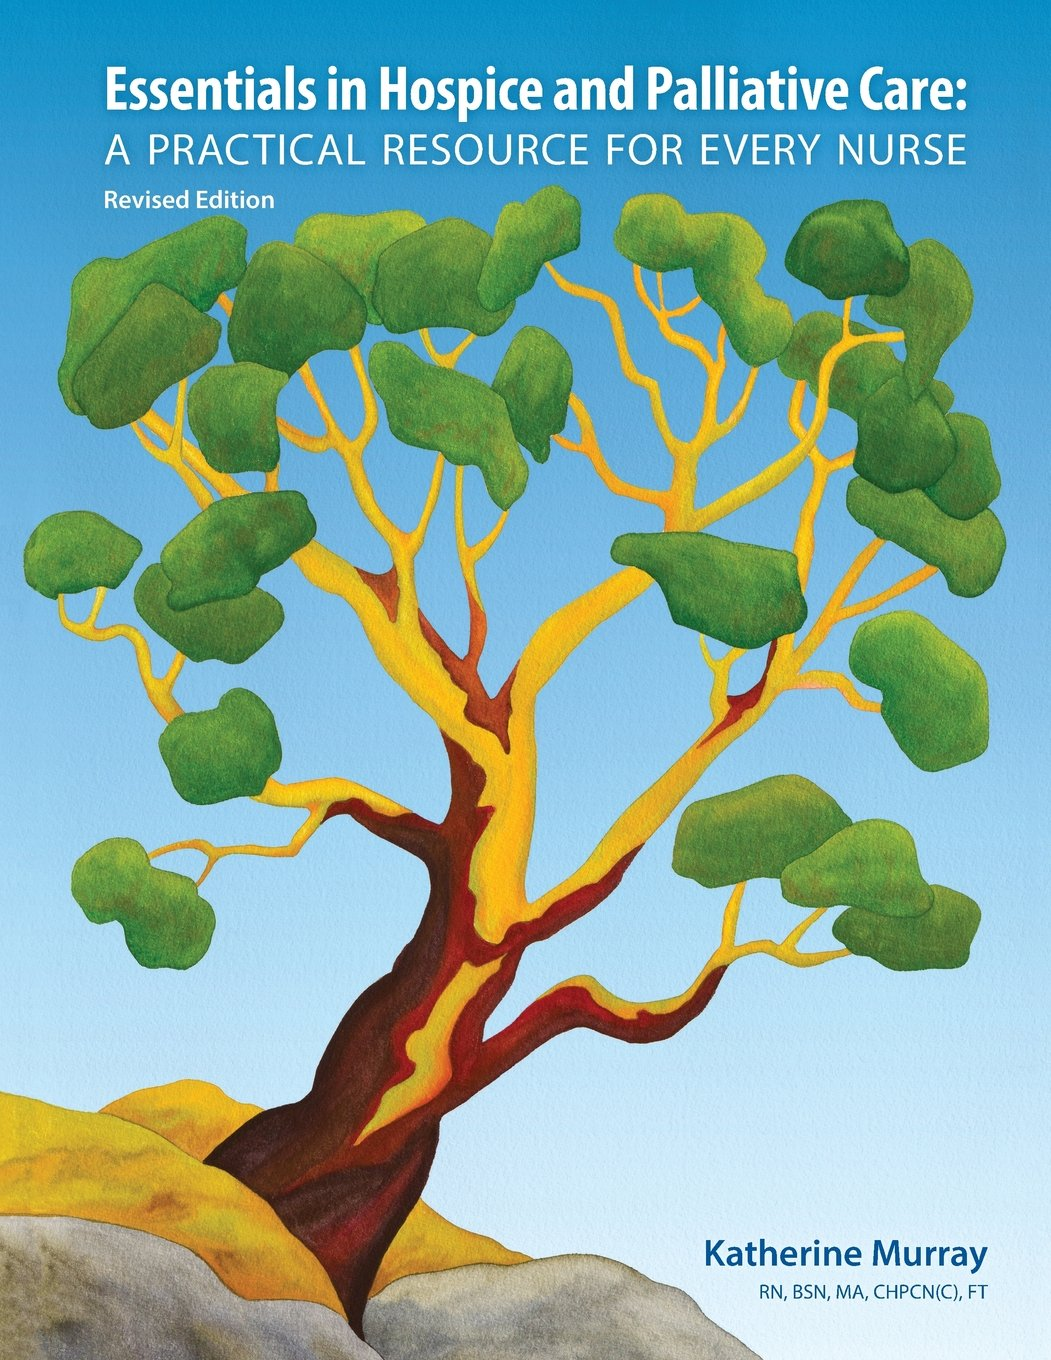 Essentials in Hospice and Palliative Care: A Practical Resource For Every Nurse